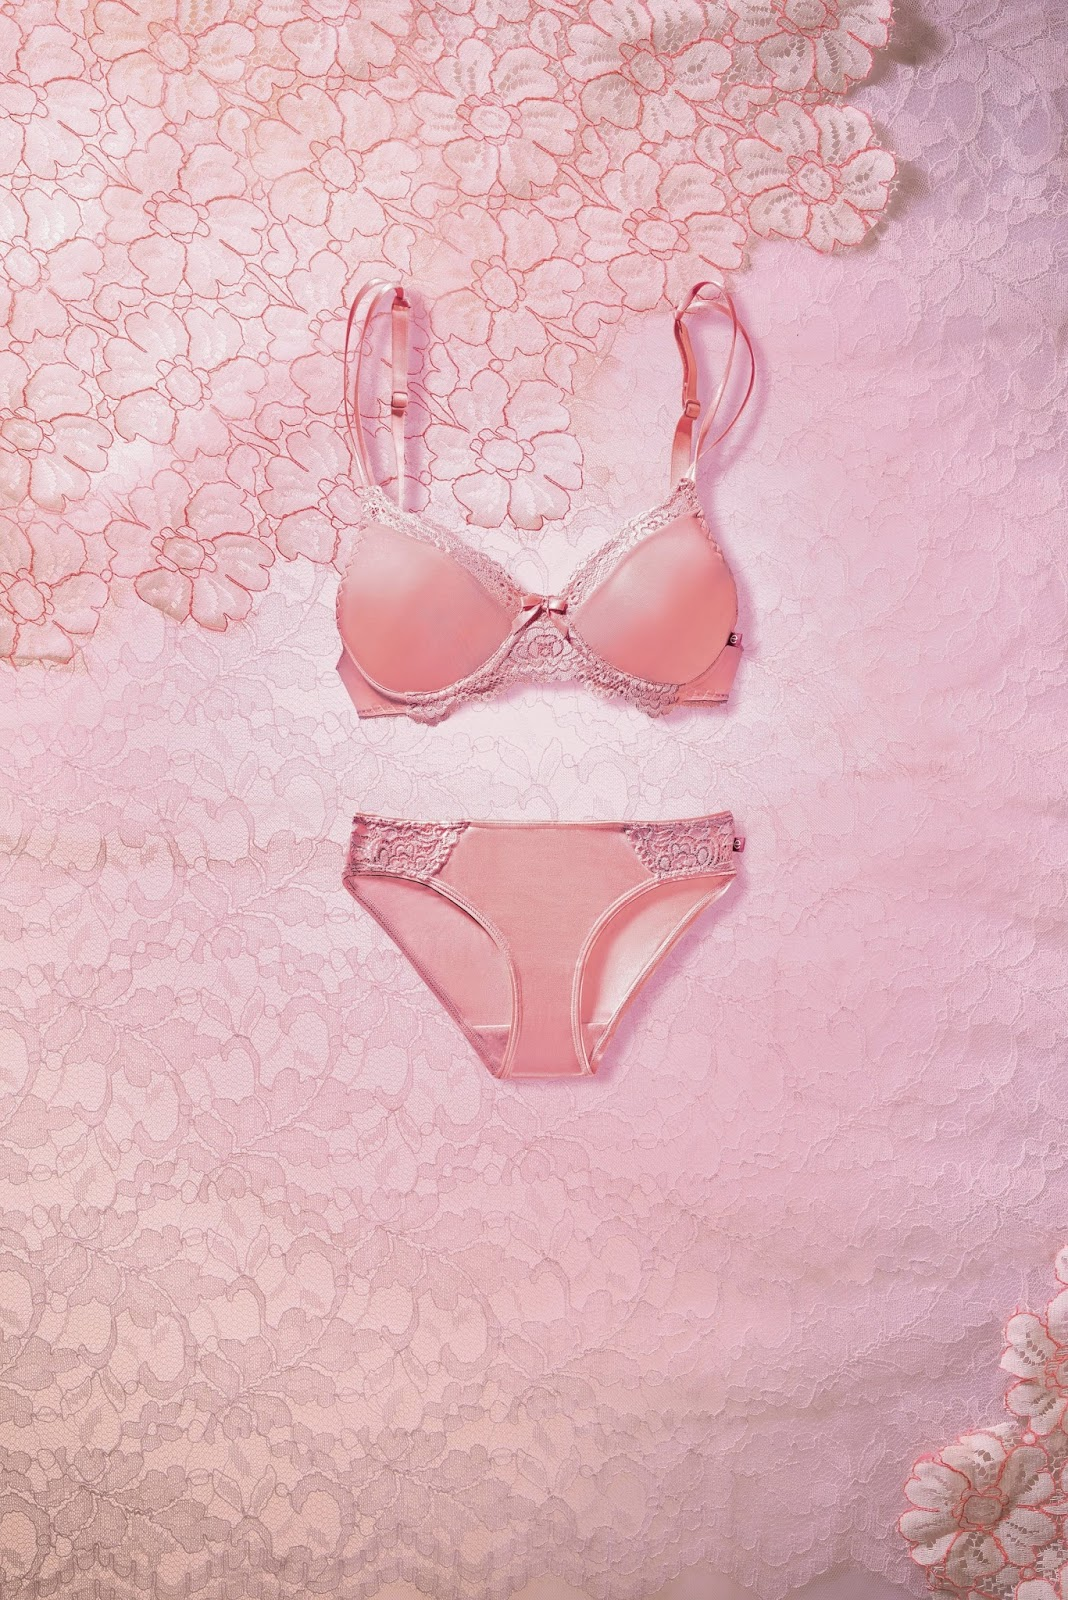 f2c782b94bbc3 Make Your Valentine's Day Special With Enamor - A Lingerie Brand ...